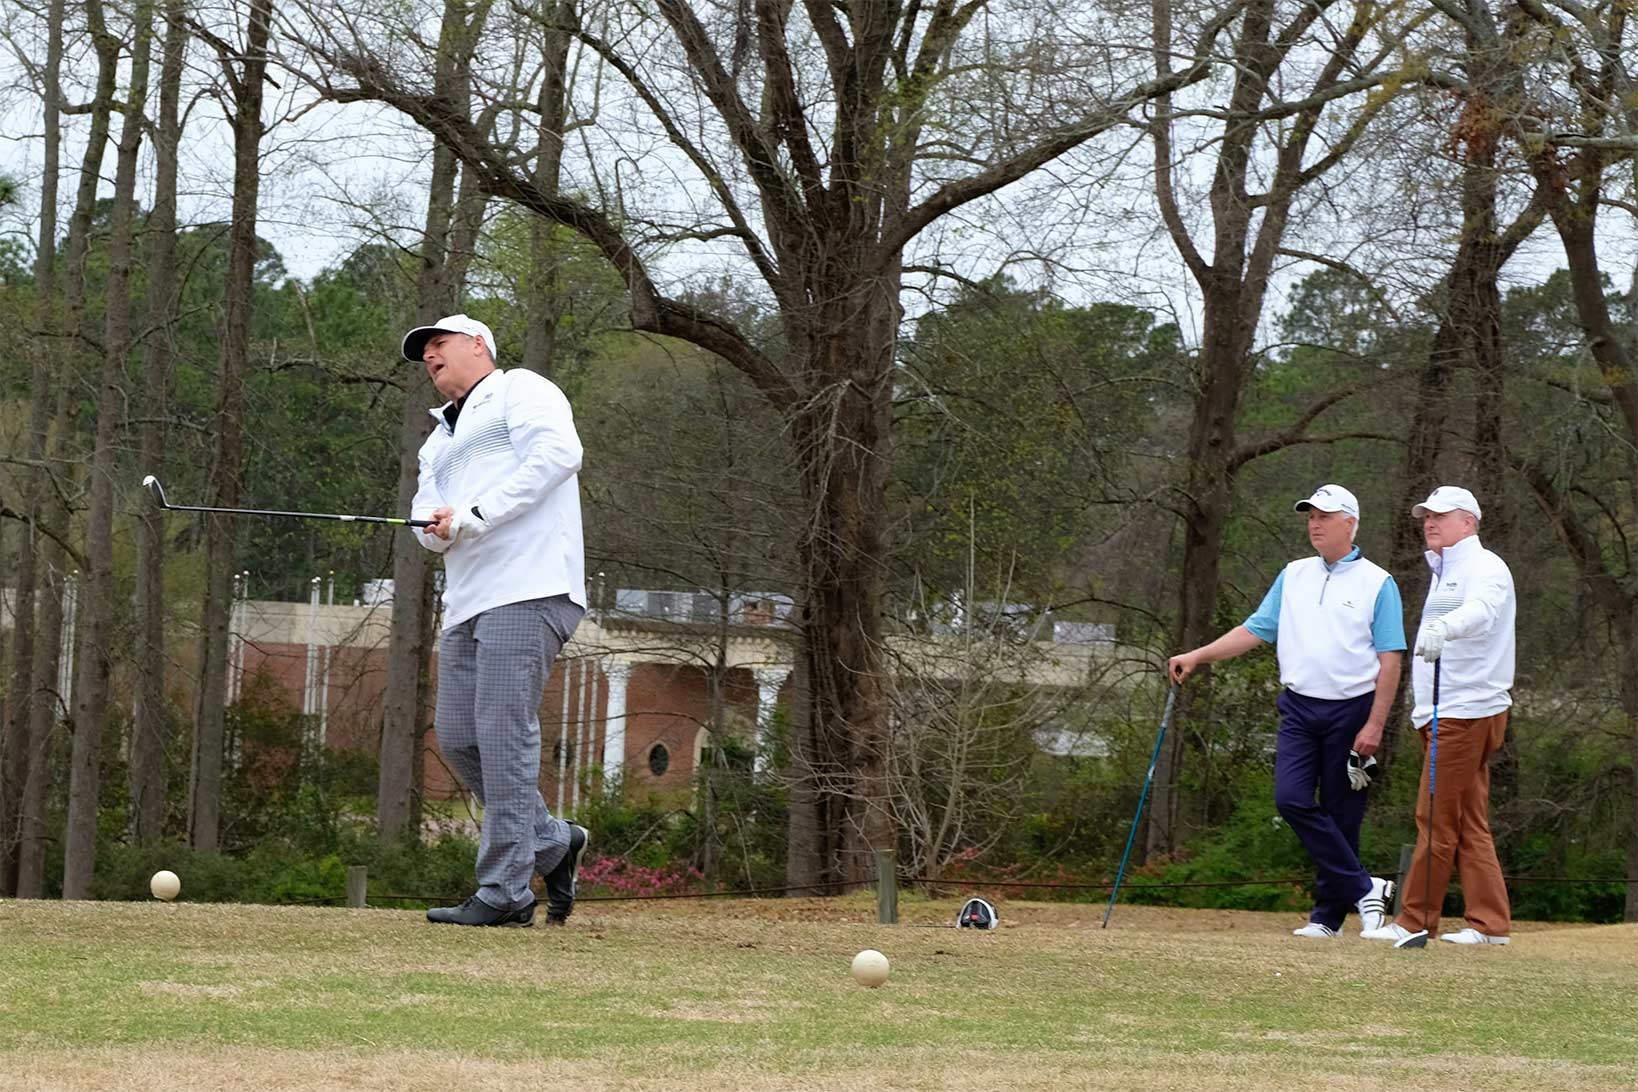 Three men playing golf, with two in the background observing the shot of another man, still in his golf stance, grimacing at his performance.